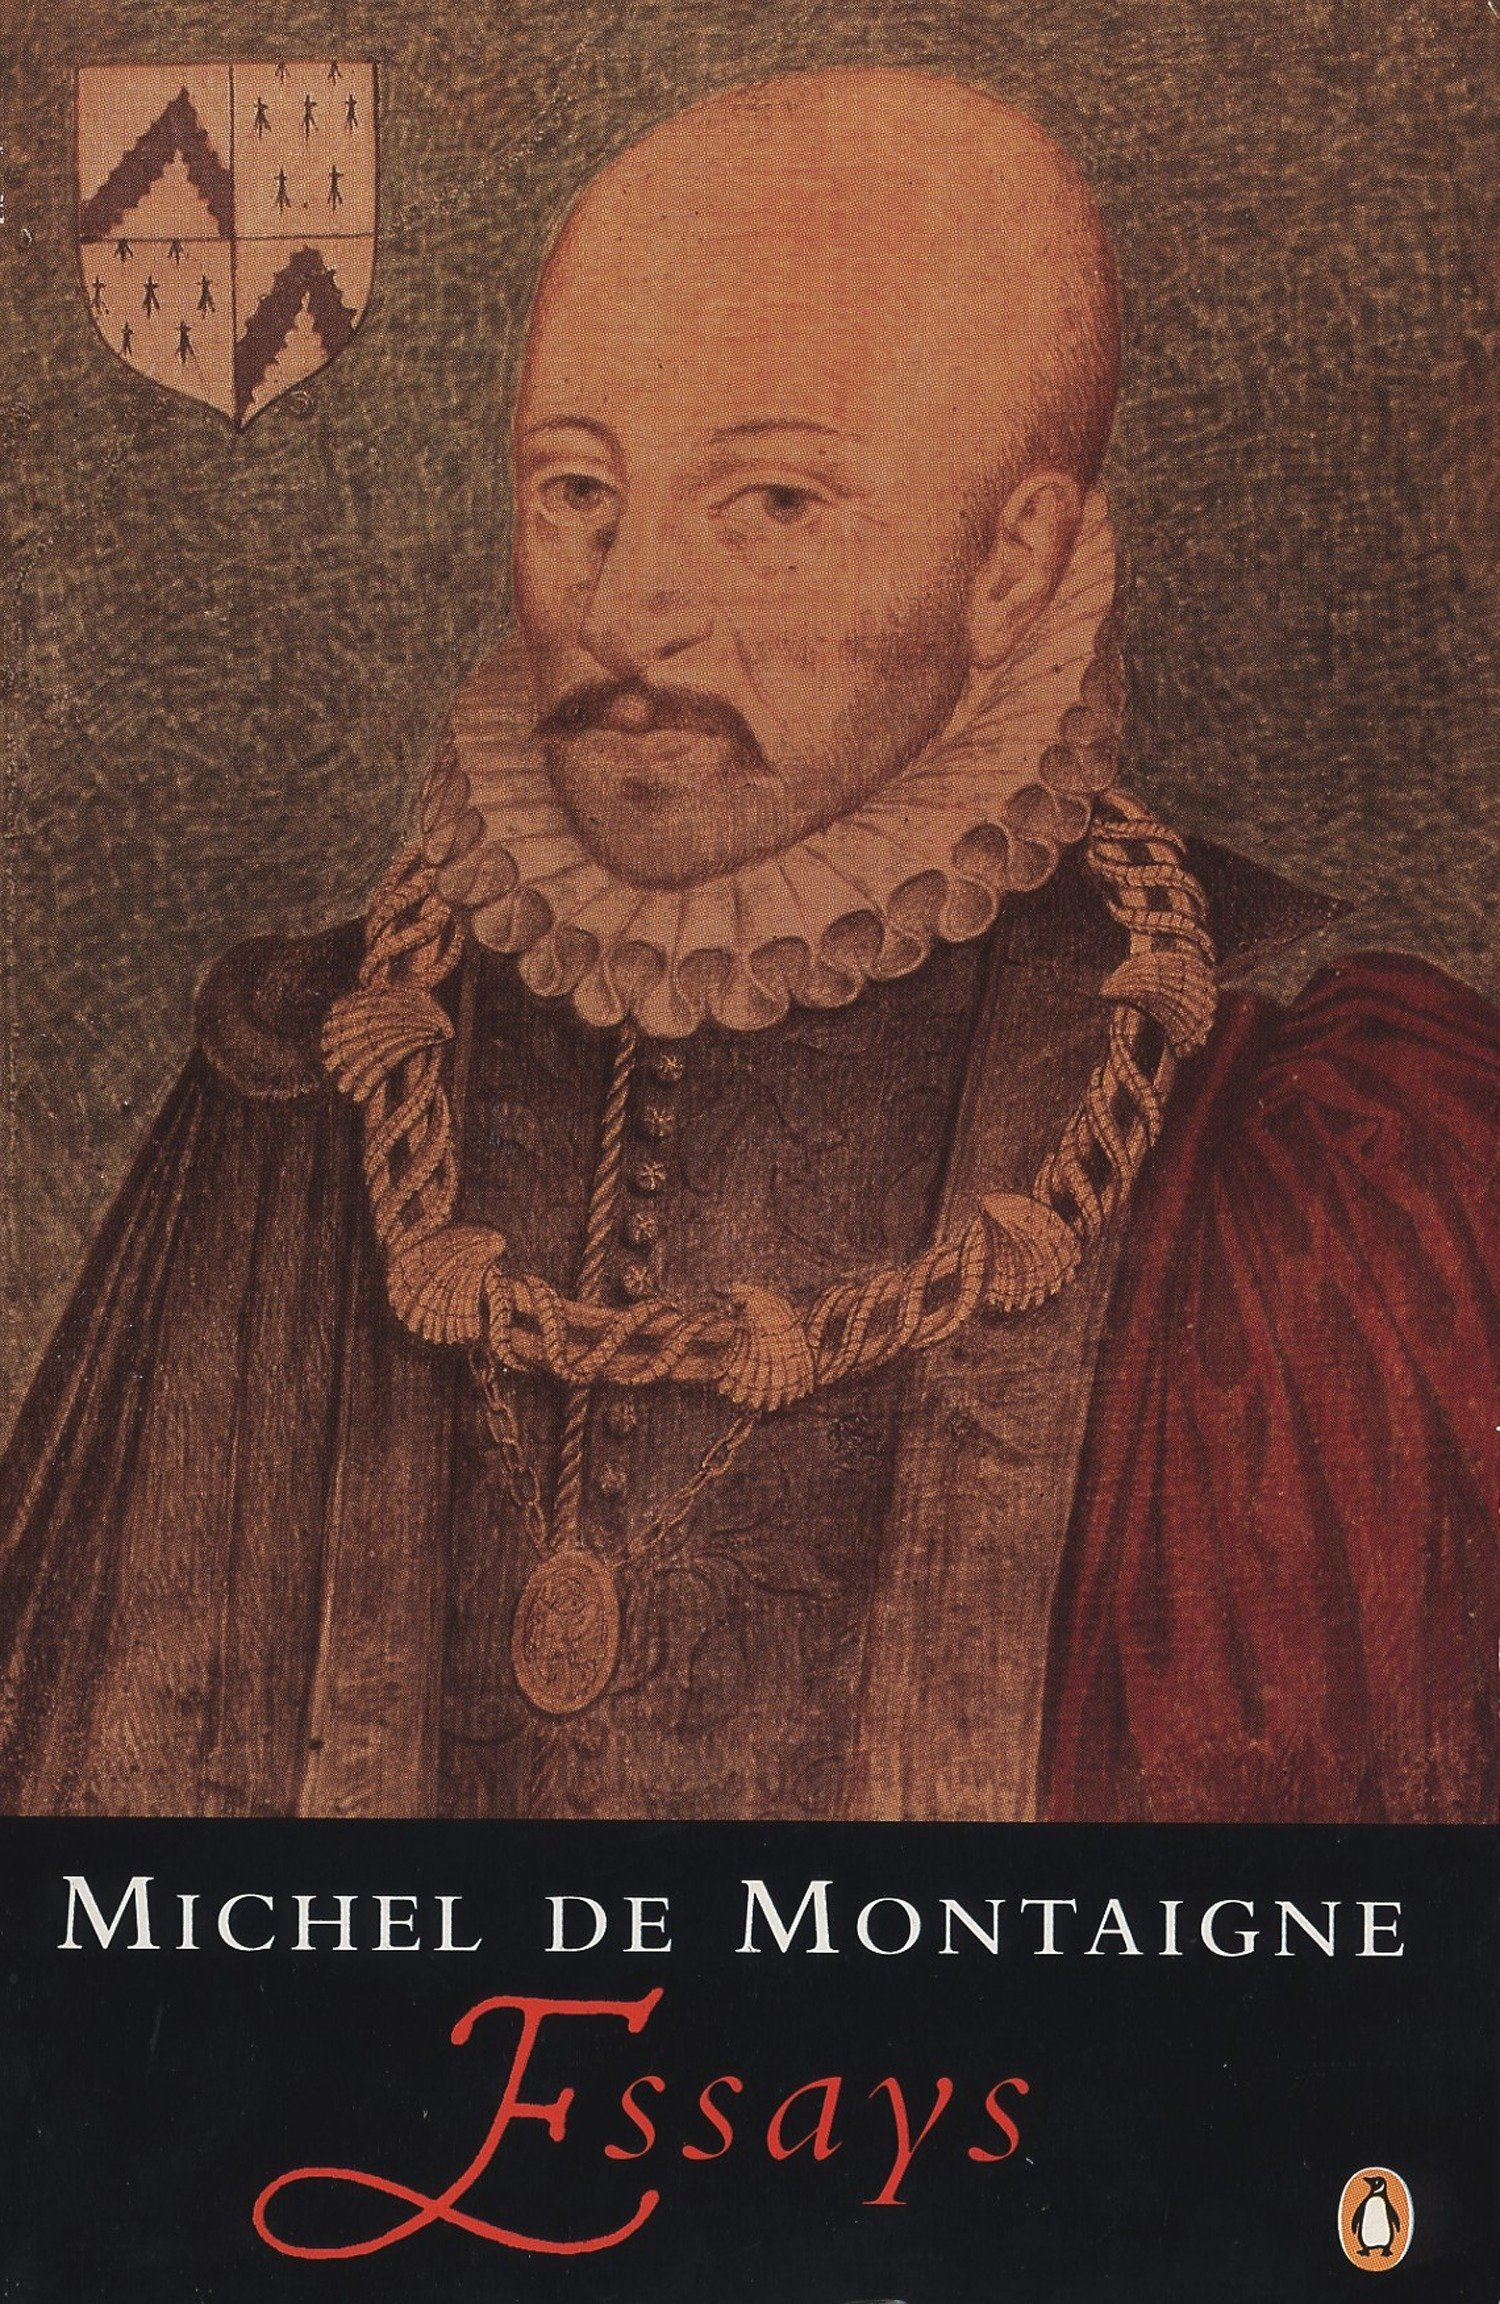 004 Montaigne Essays 91rkj2zfmvl Essay Archaicawful Summary On Experience Quotes Best Translation Full